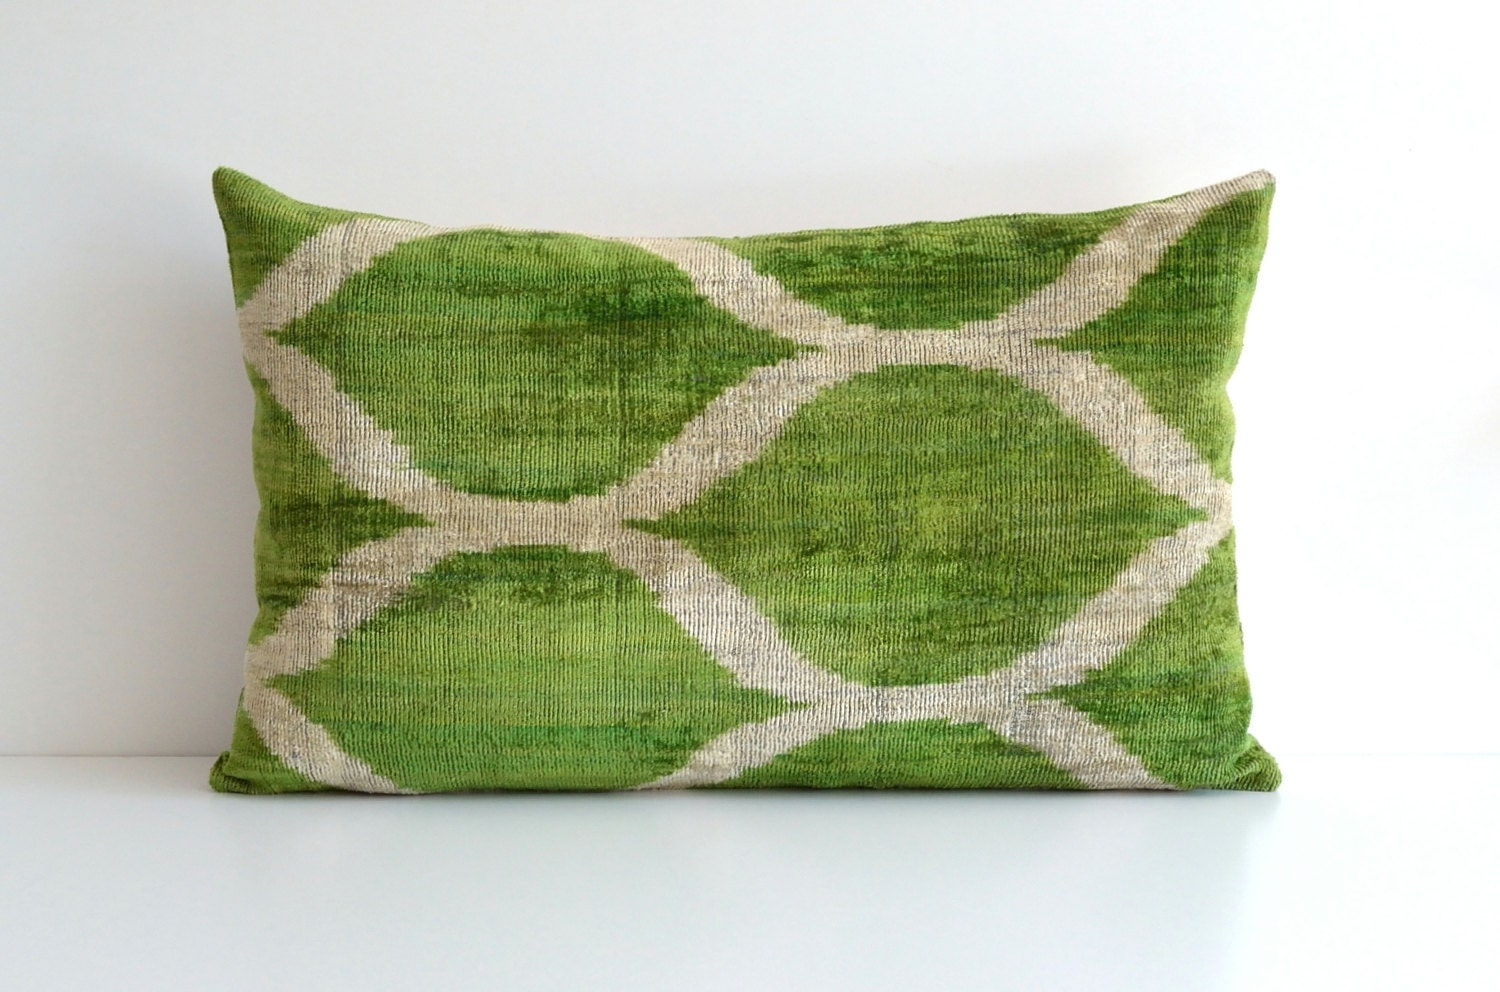 Green Couch With Throw Pillows : Green Velvet Pillow Ikat Pillows Couch Pillow Throw by pillowme